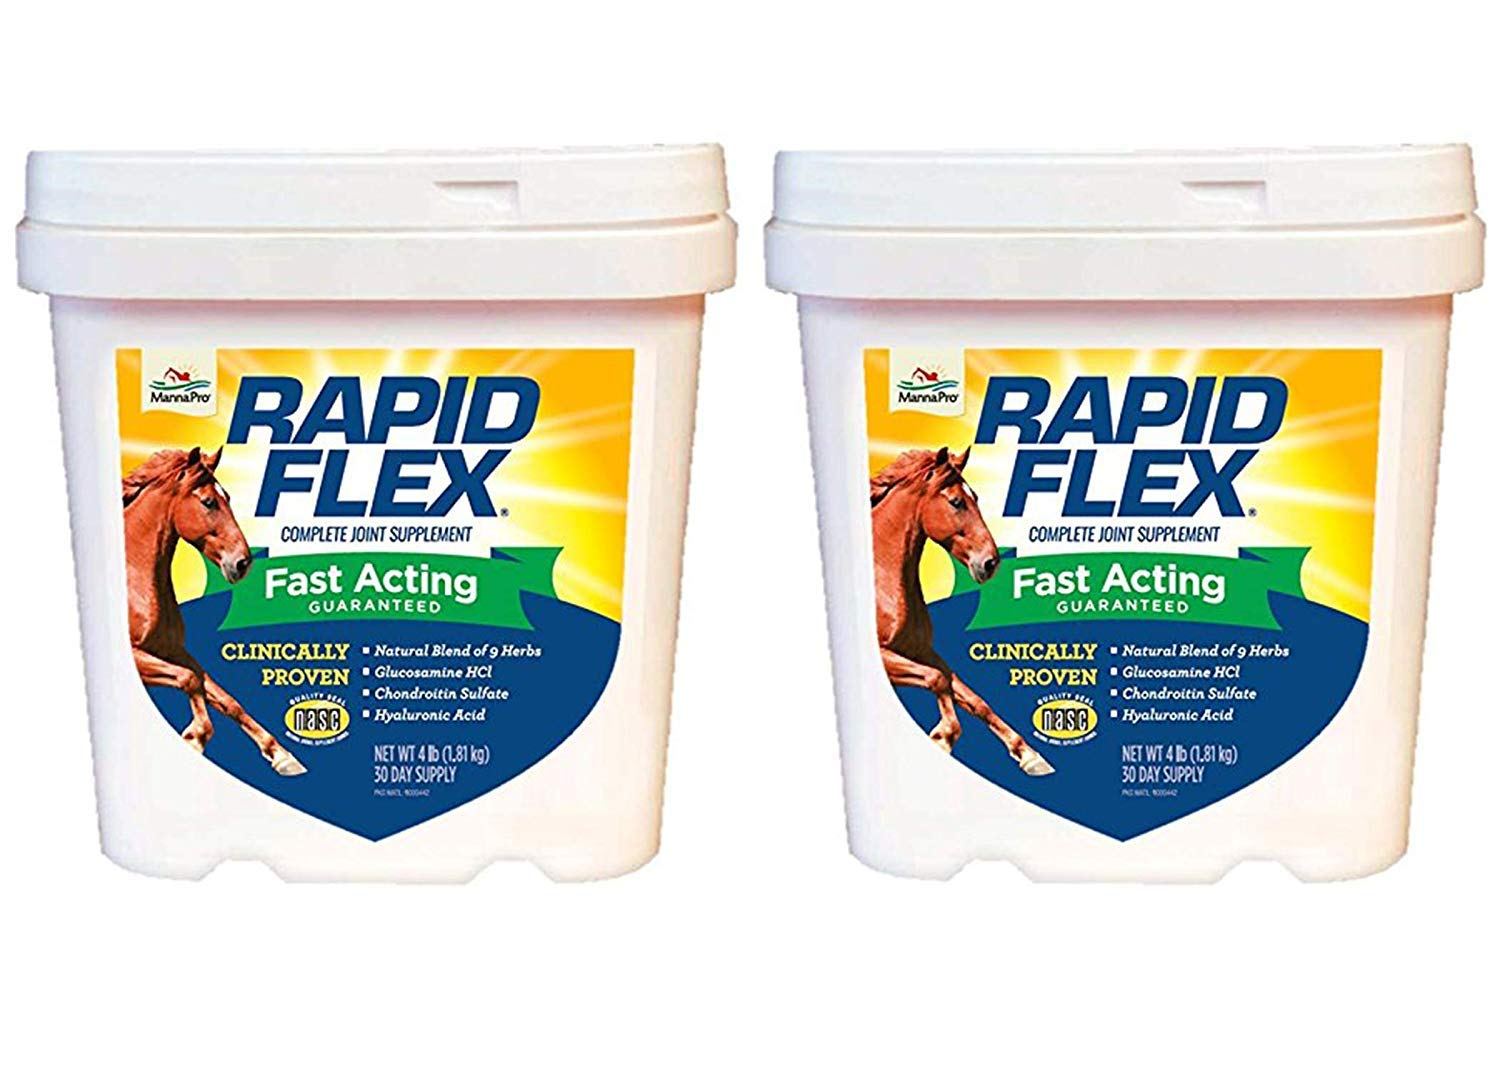 Manna Pro Rapid Flex Supplement for Horses, 4 Pounds (Pack of 2) by Manna Pro